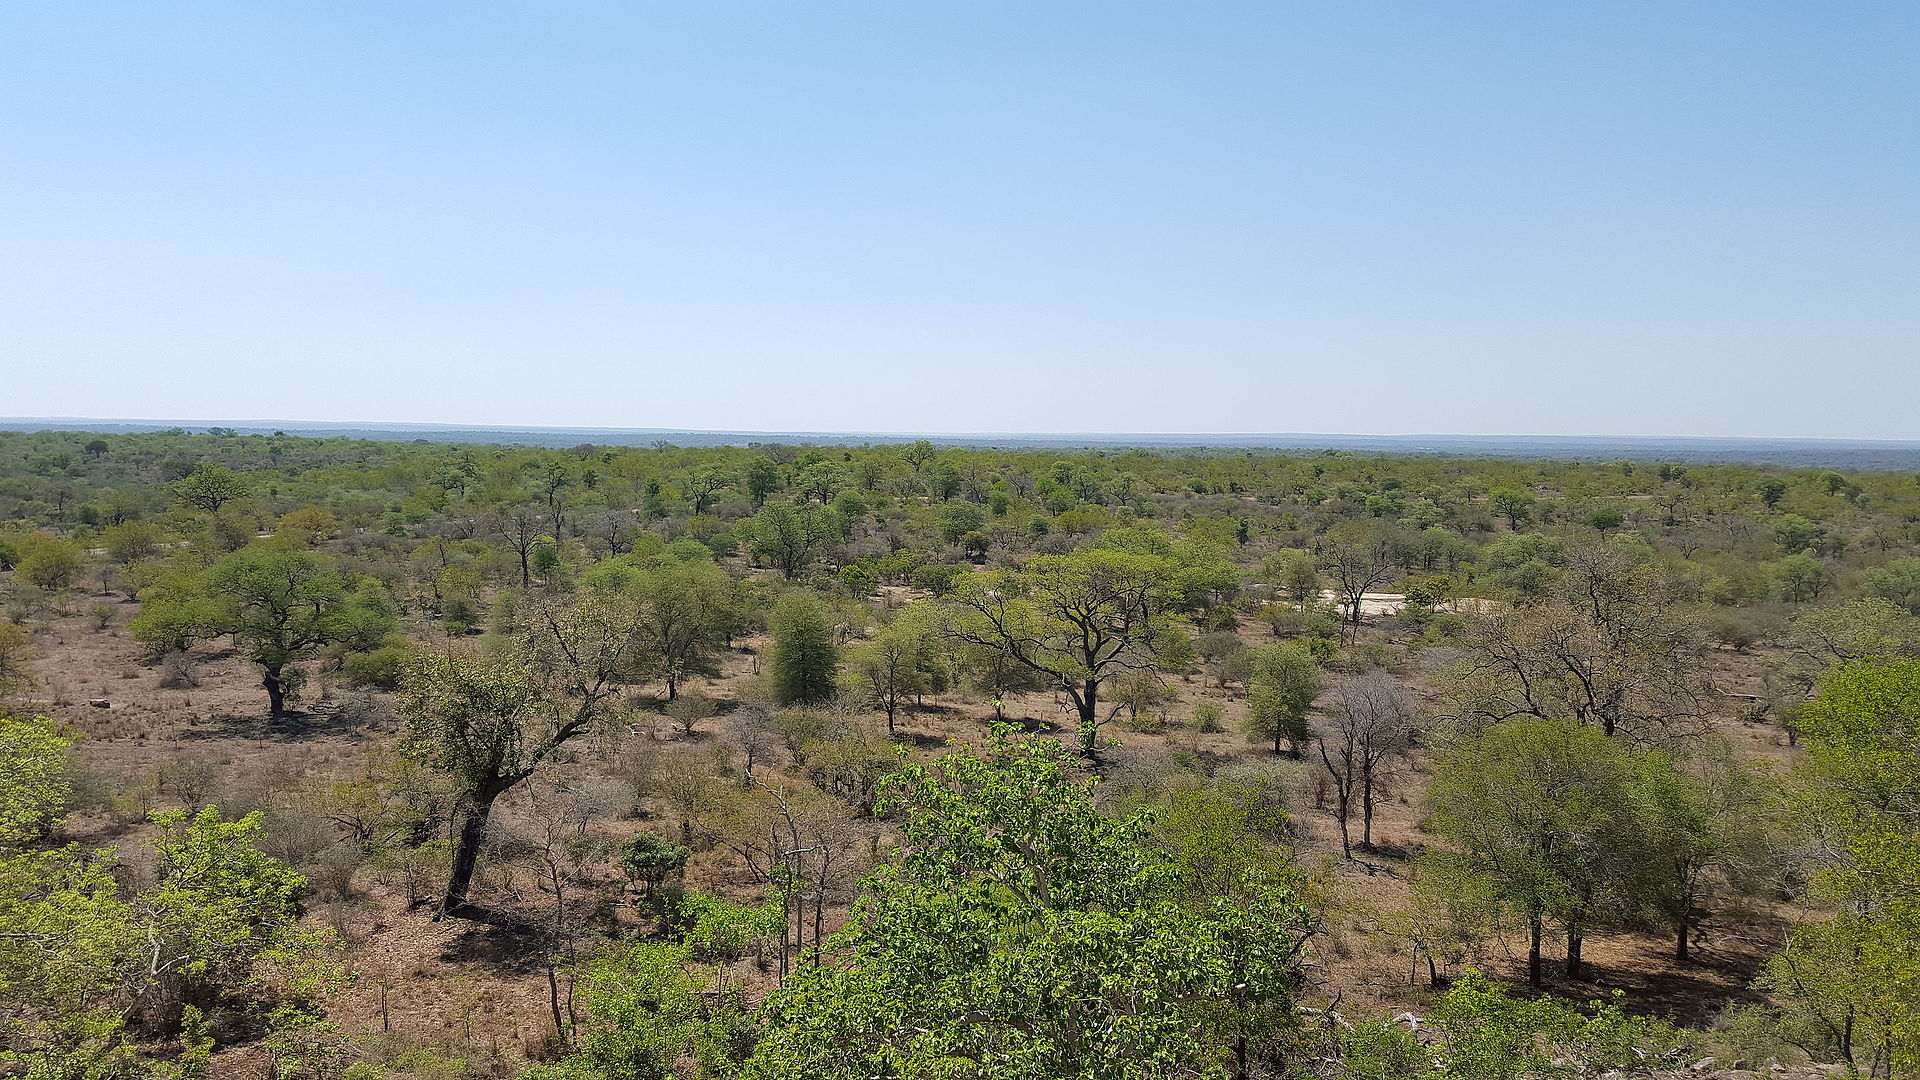 South Africa Facts, South African Savannah